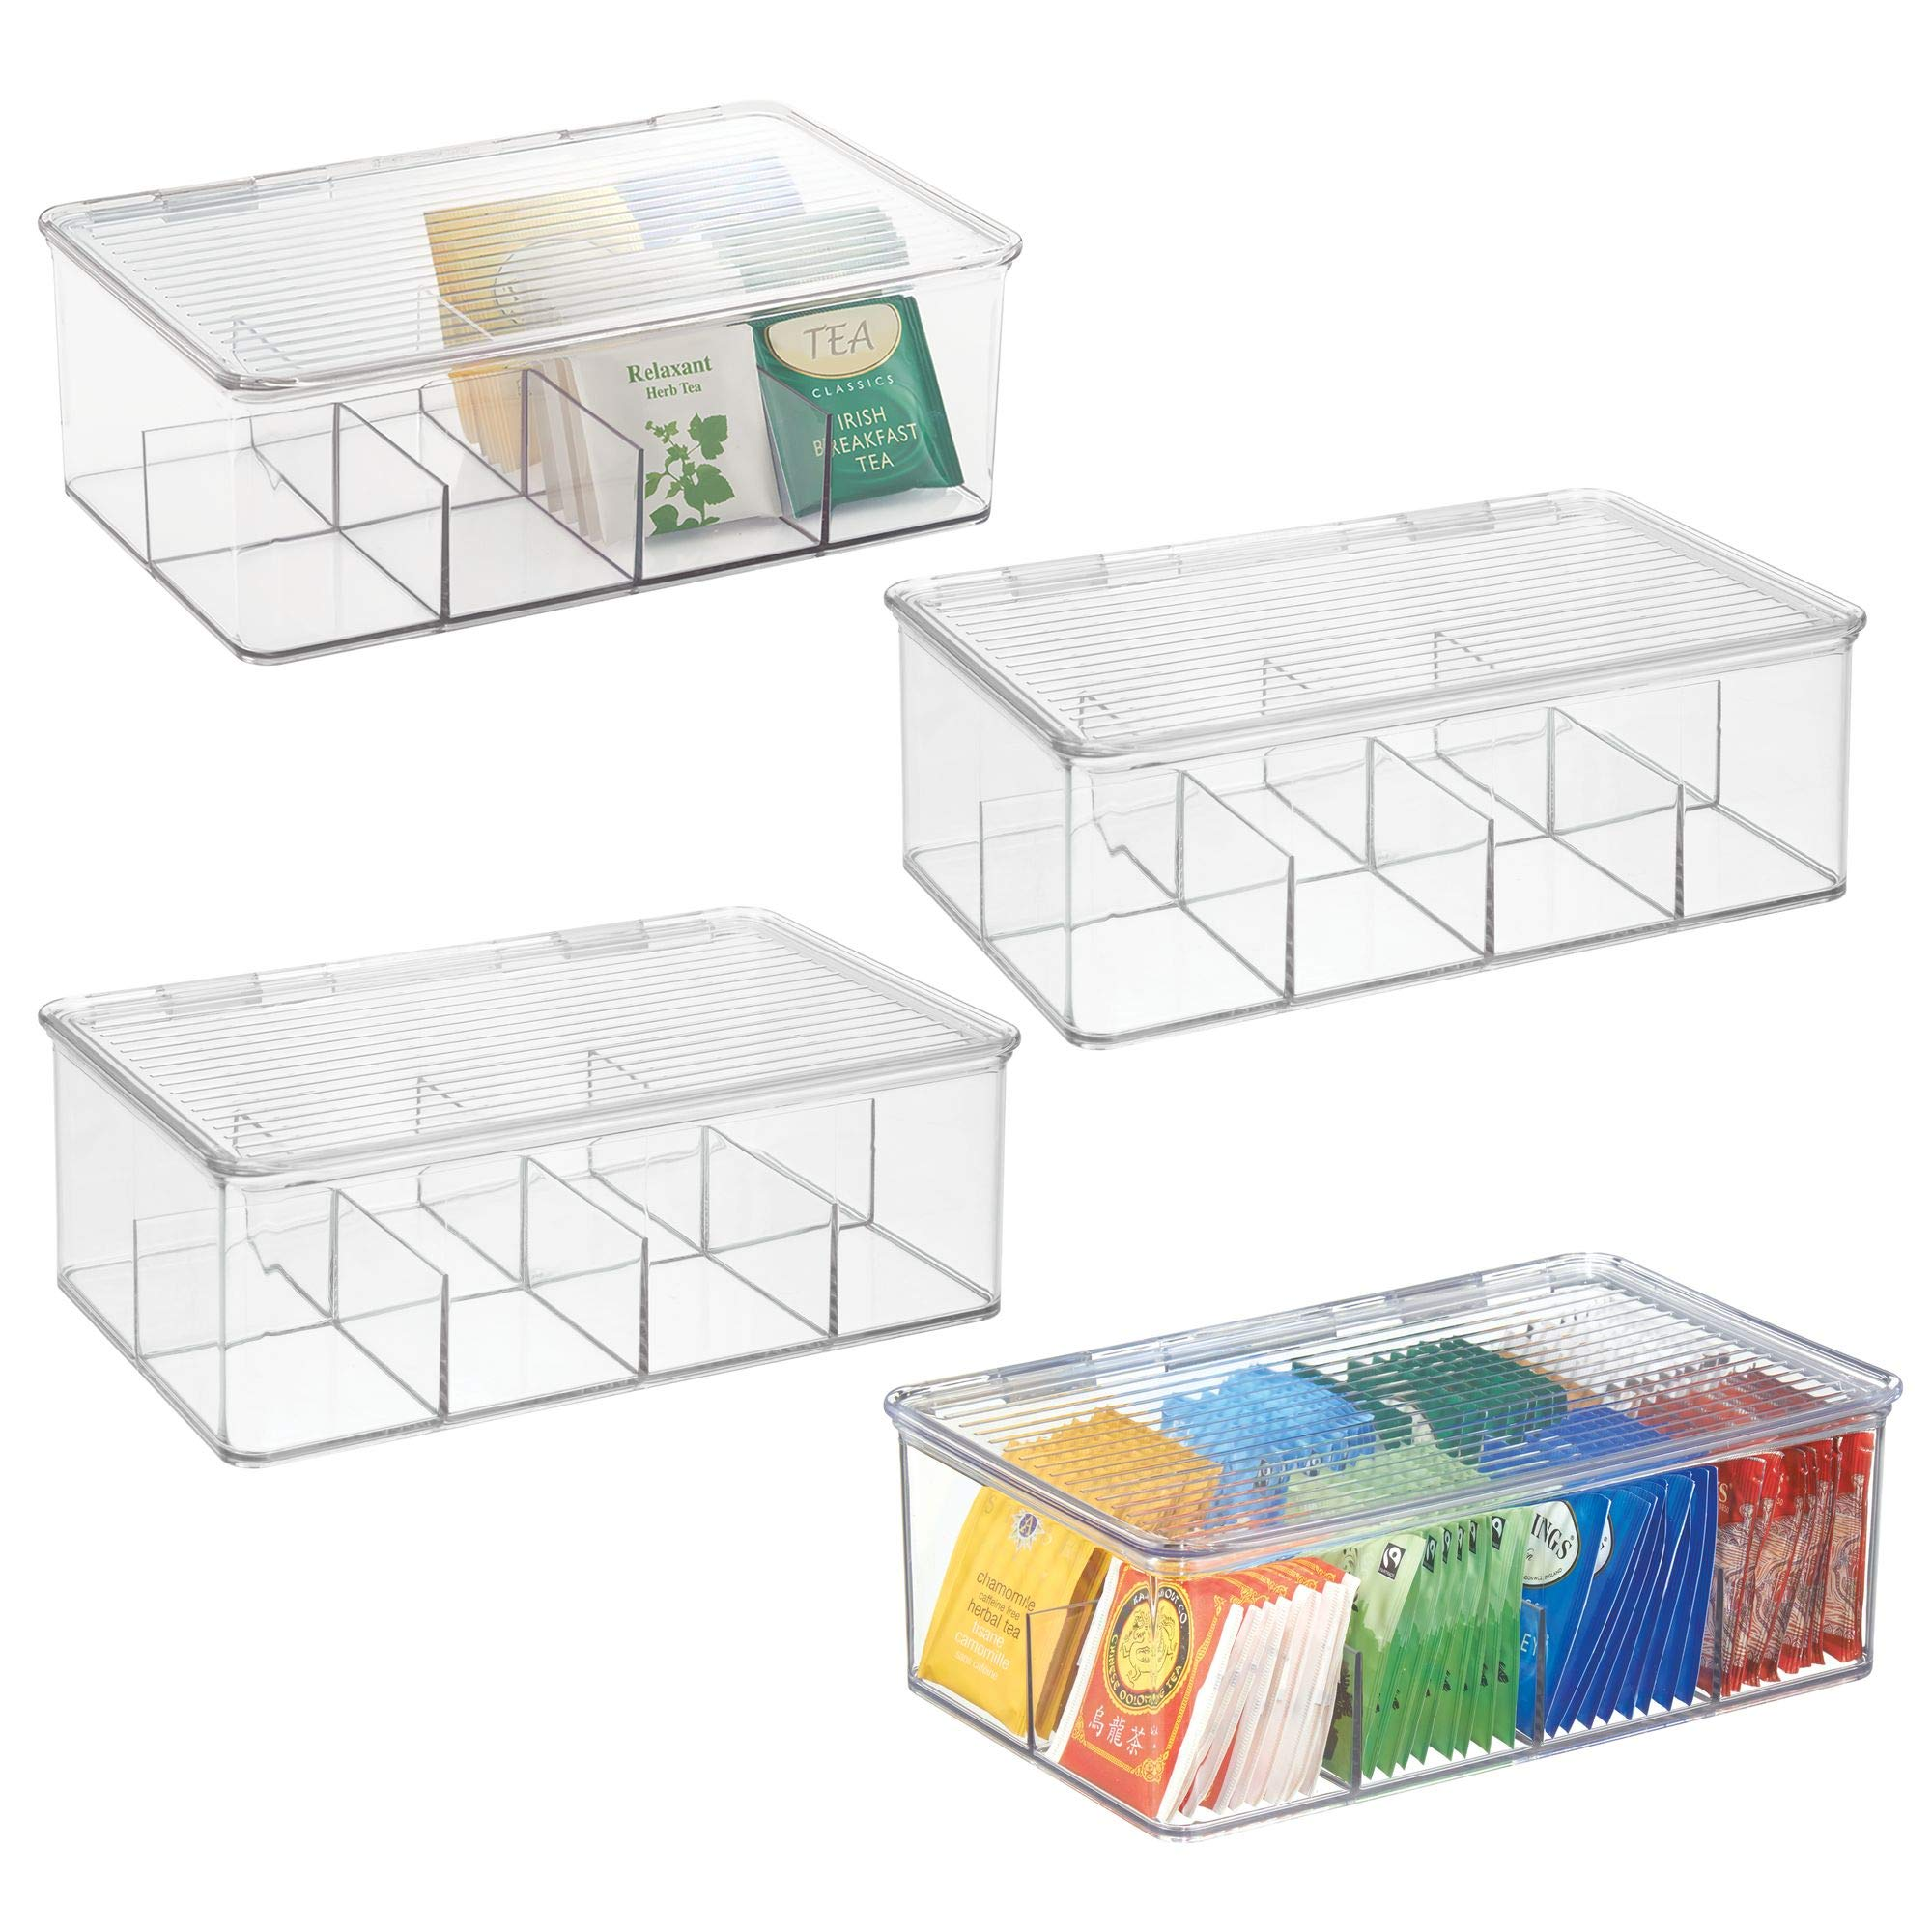 mDesign Stackable Plastic Tea Bag Organizer Storage Bin Box for Kitchen Cabinets, Countertops, Pantry - Hinged Lid - BPA Free, Food Safe - Holds Beverage Bags, Cups, Pods, Packets - Pack of 4, Clear